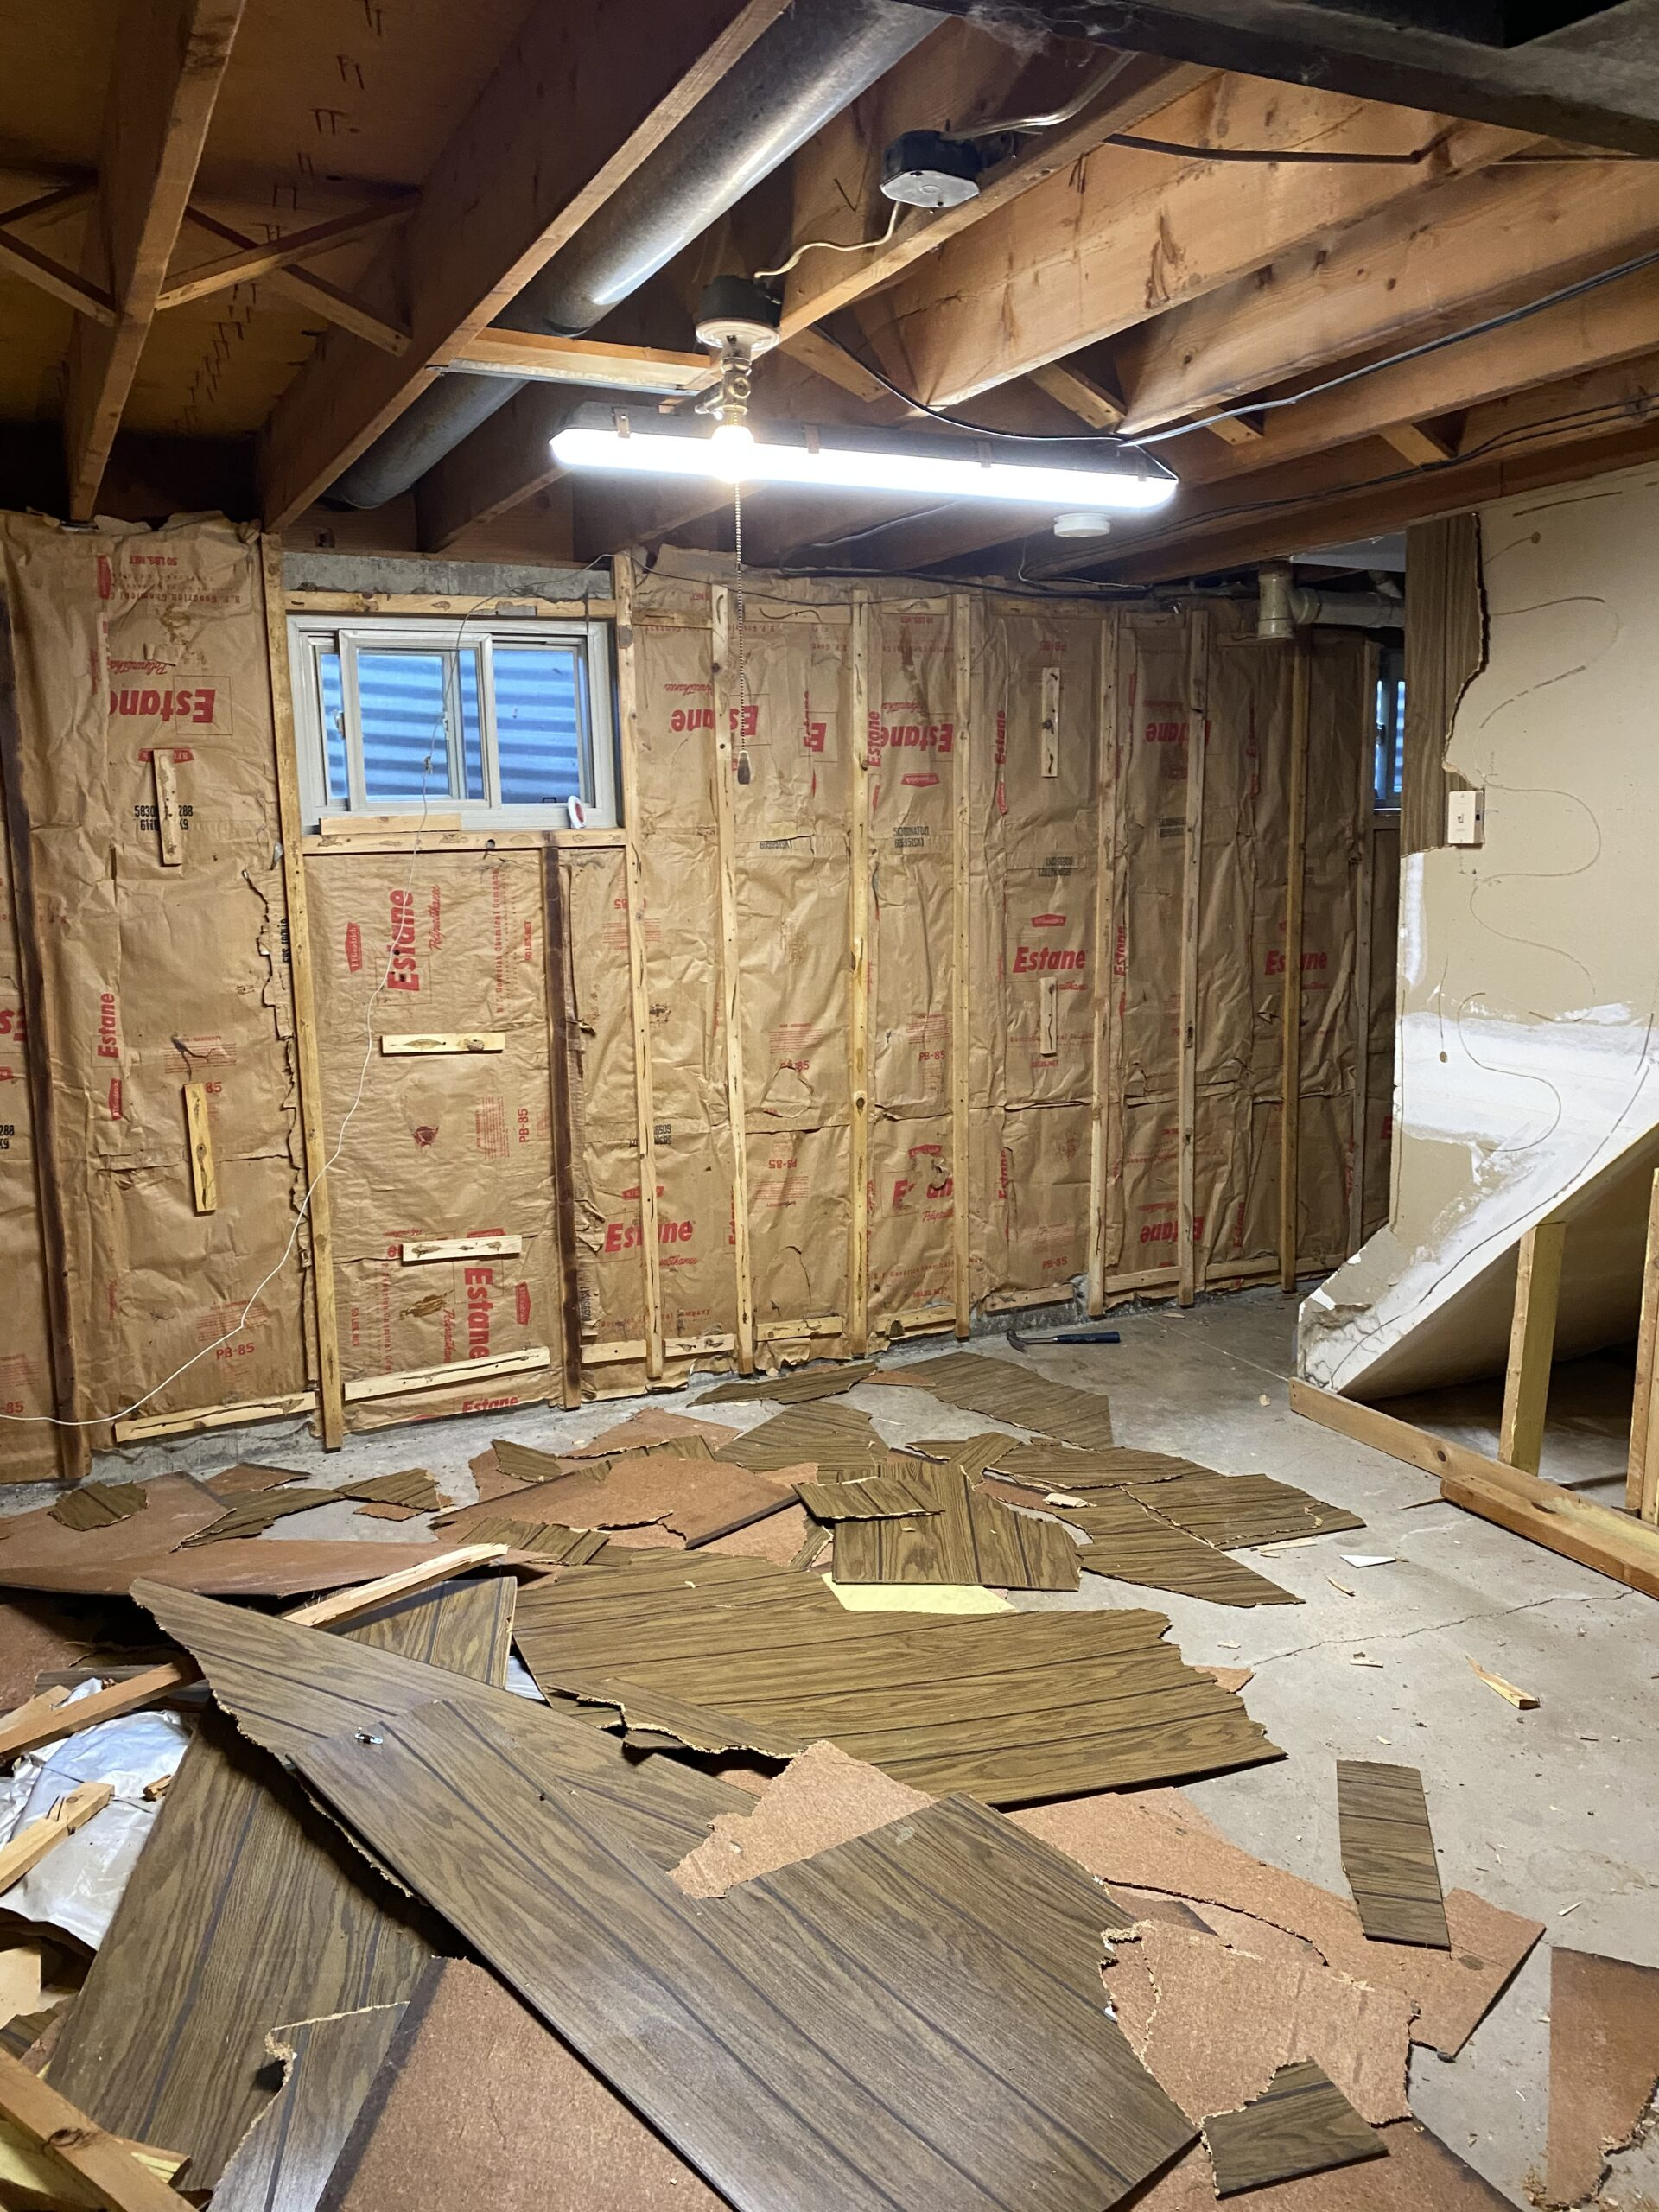 All the paneling has been pulled off the walls and side of the stairs.